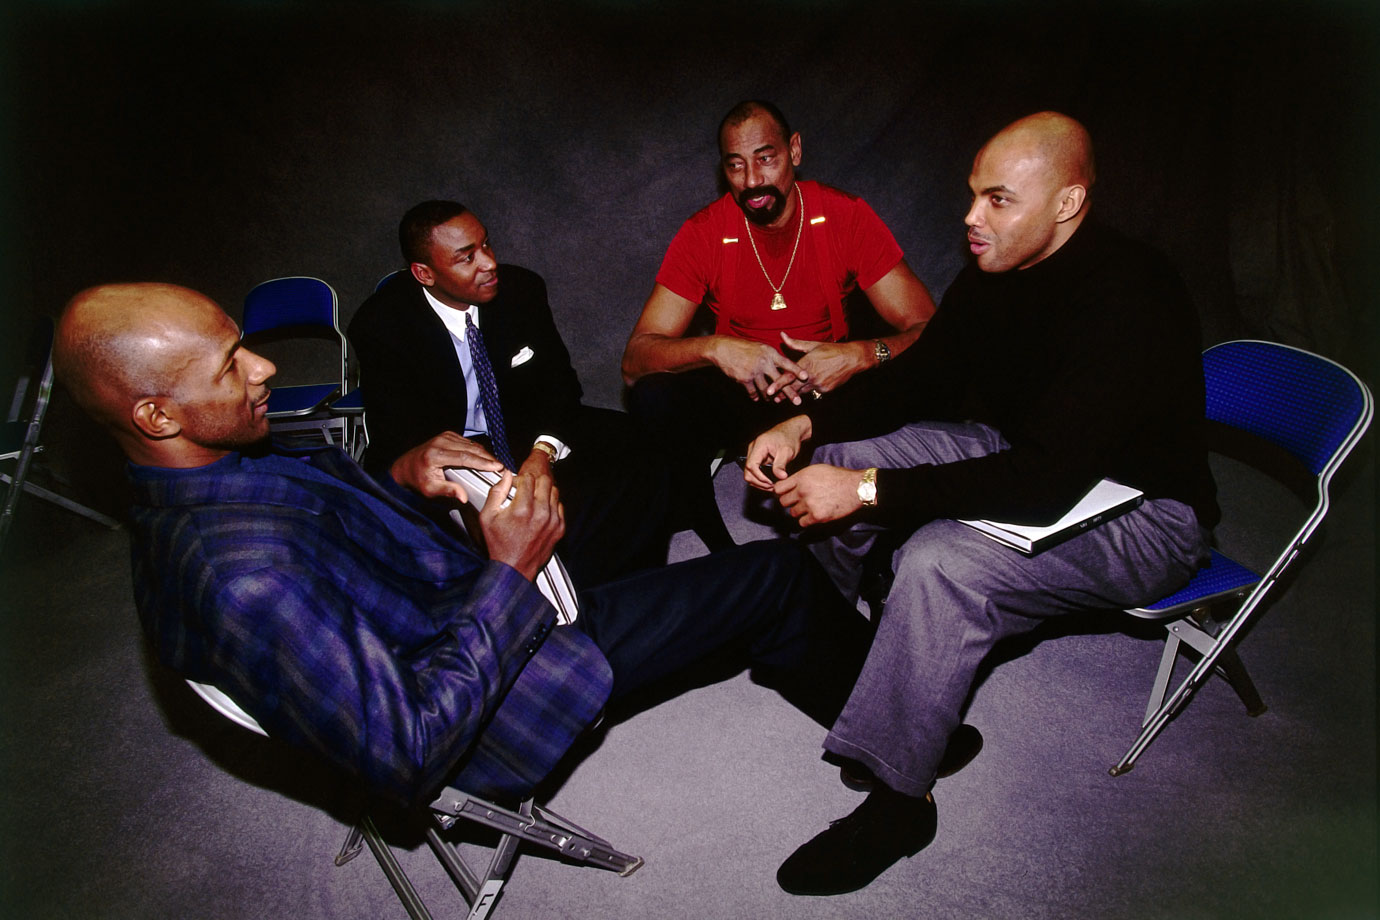 Charles Barkley reminisces with NBA legends Clyde Drexler, Isiah Thomas and Wilt Chamberlain during NBA All-Star Weekend. Barkley spent two seasons on the Houston Rockets with Drexler and played on the Eastern Conference All-Star Team with Thomas for six years.